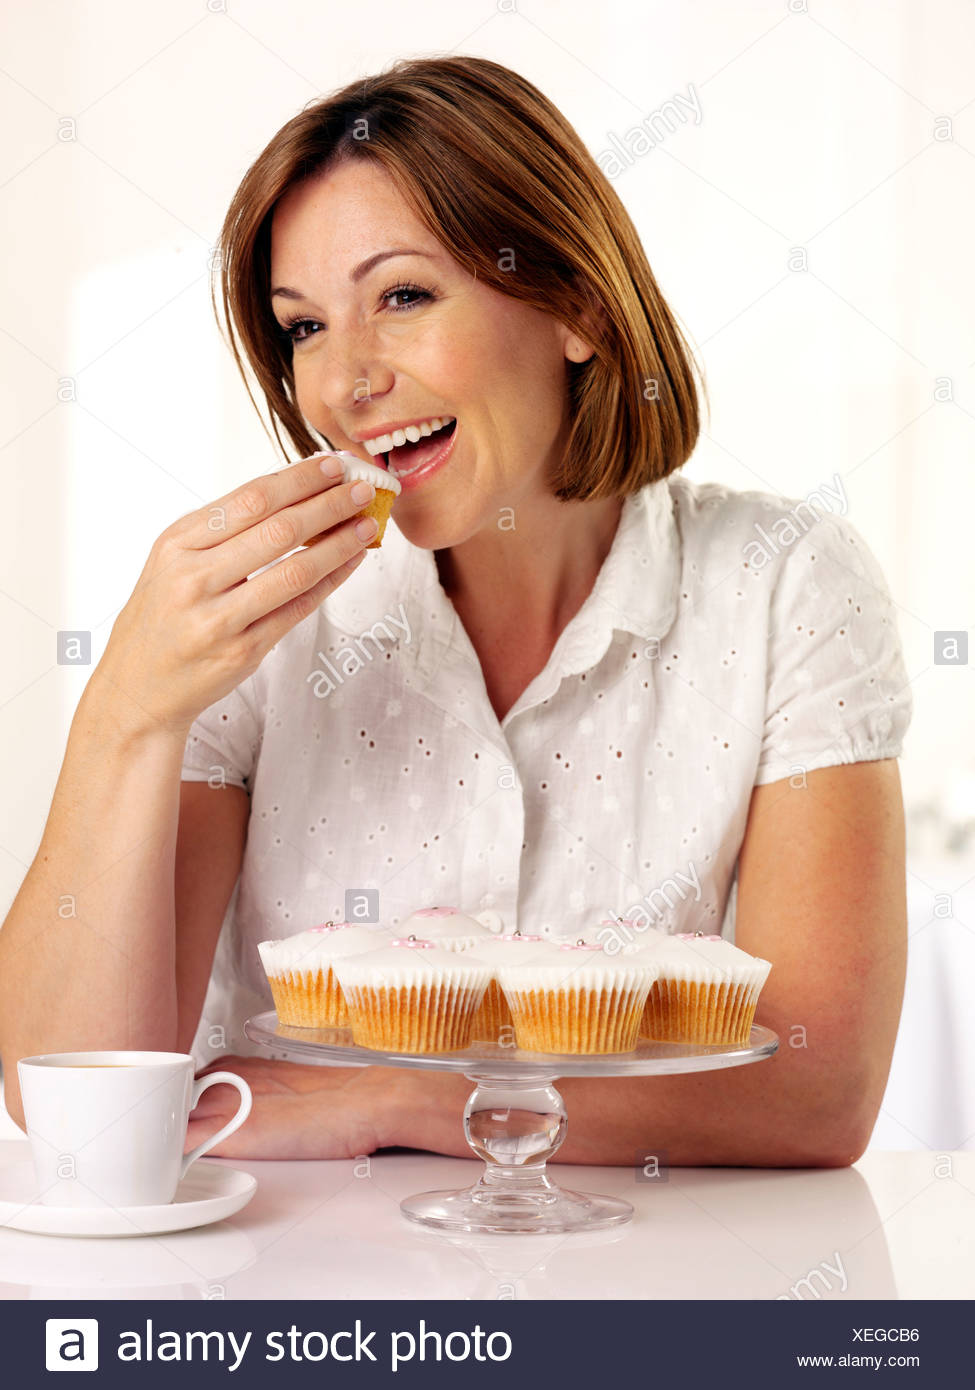 WOMAN EATING A CUPCAKE - Stock Image